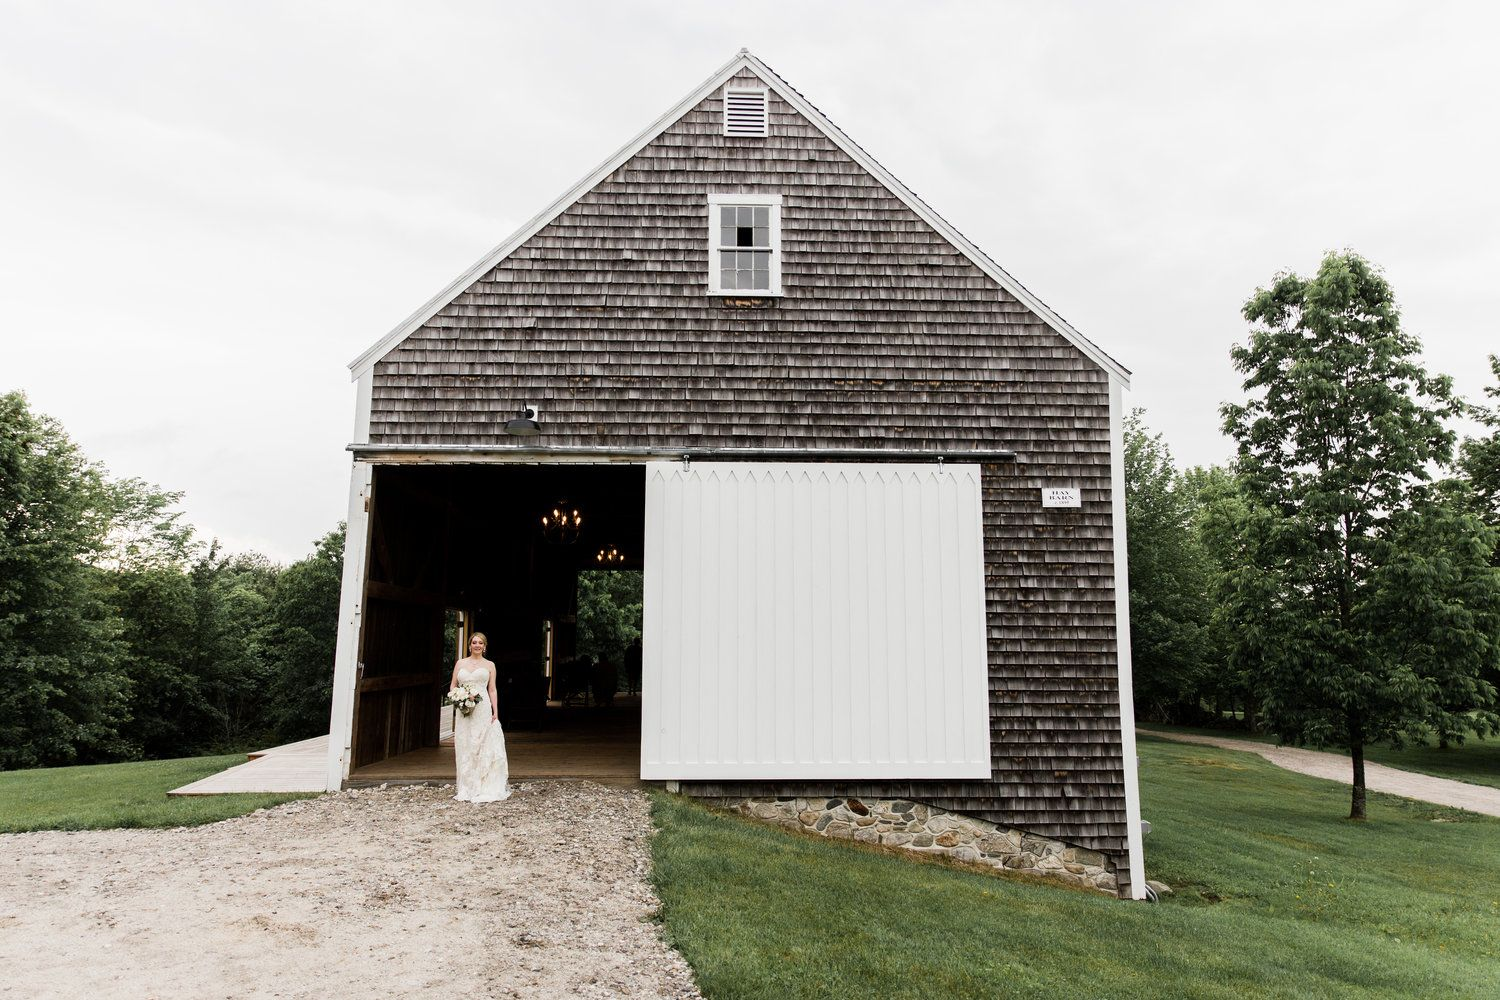 Cunningham Farm Elopement In New Gloucester Maine And Sailboat Reception In Casco Bay Maine Wedding Photographer Maine Wedding Photographer Maine Wedding Maine Florist